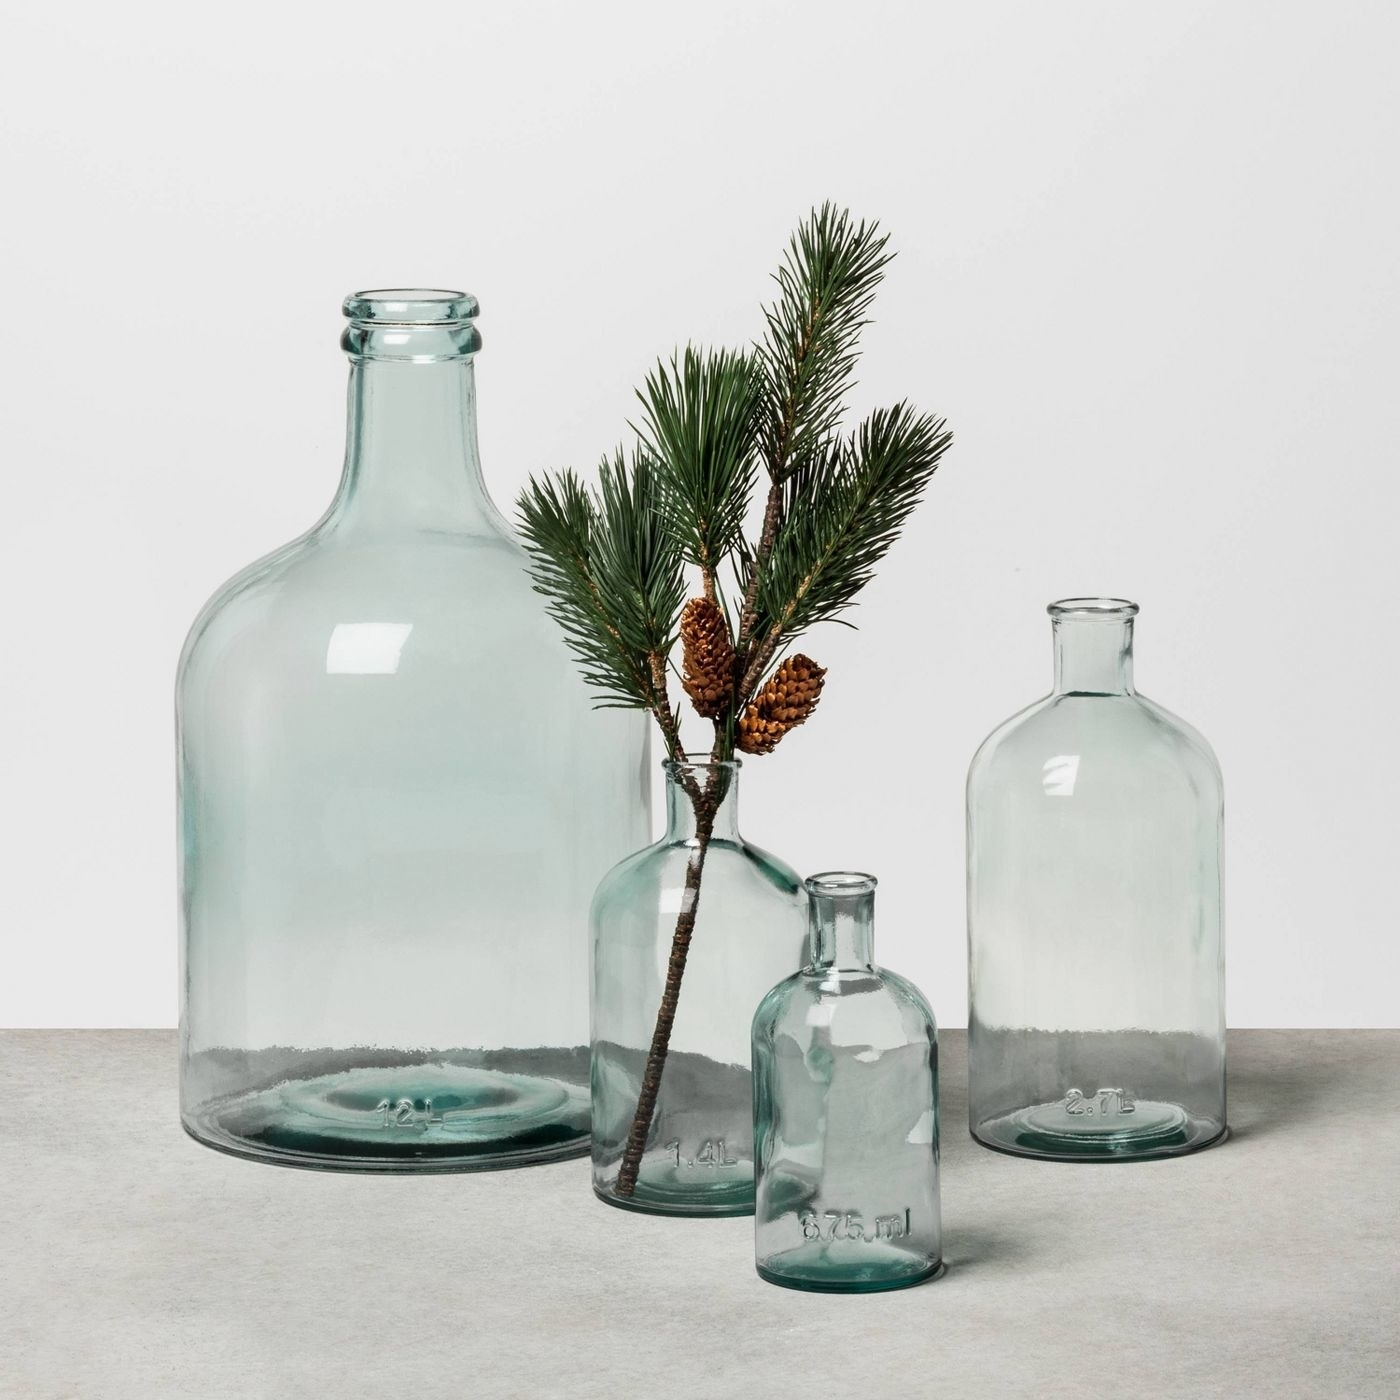 various sizes of clear glass vases on a table, one holding a pine tree branch